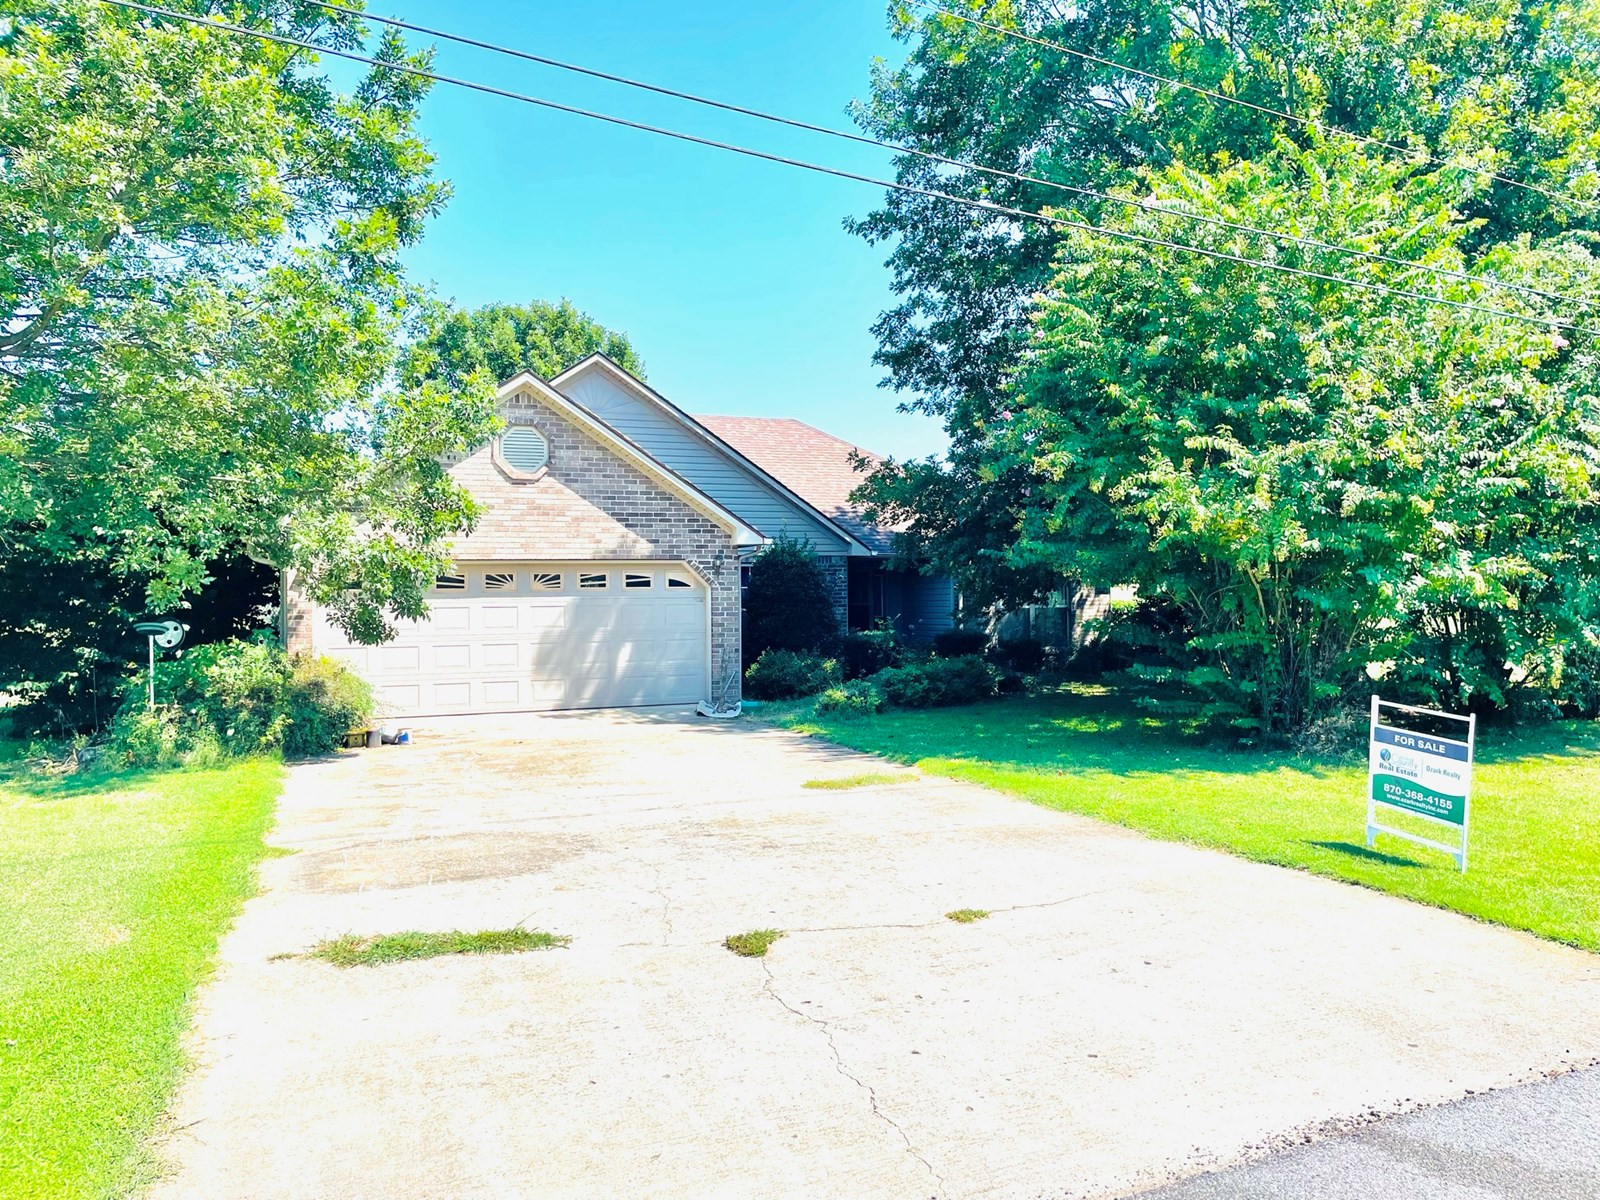 Home for sale in North Central Arkansas